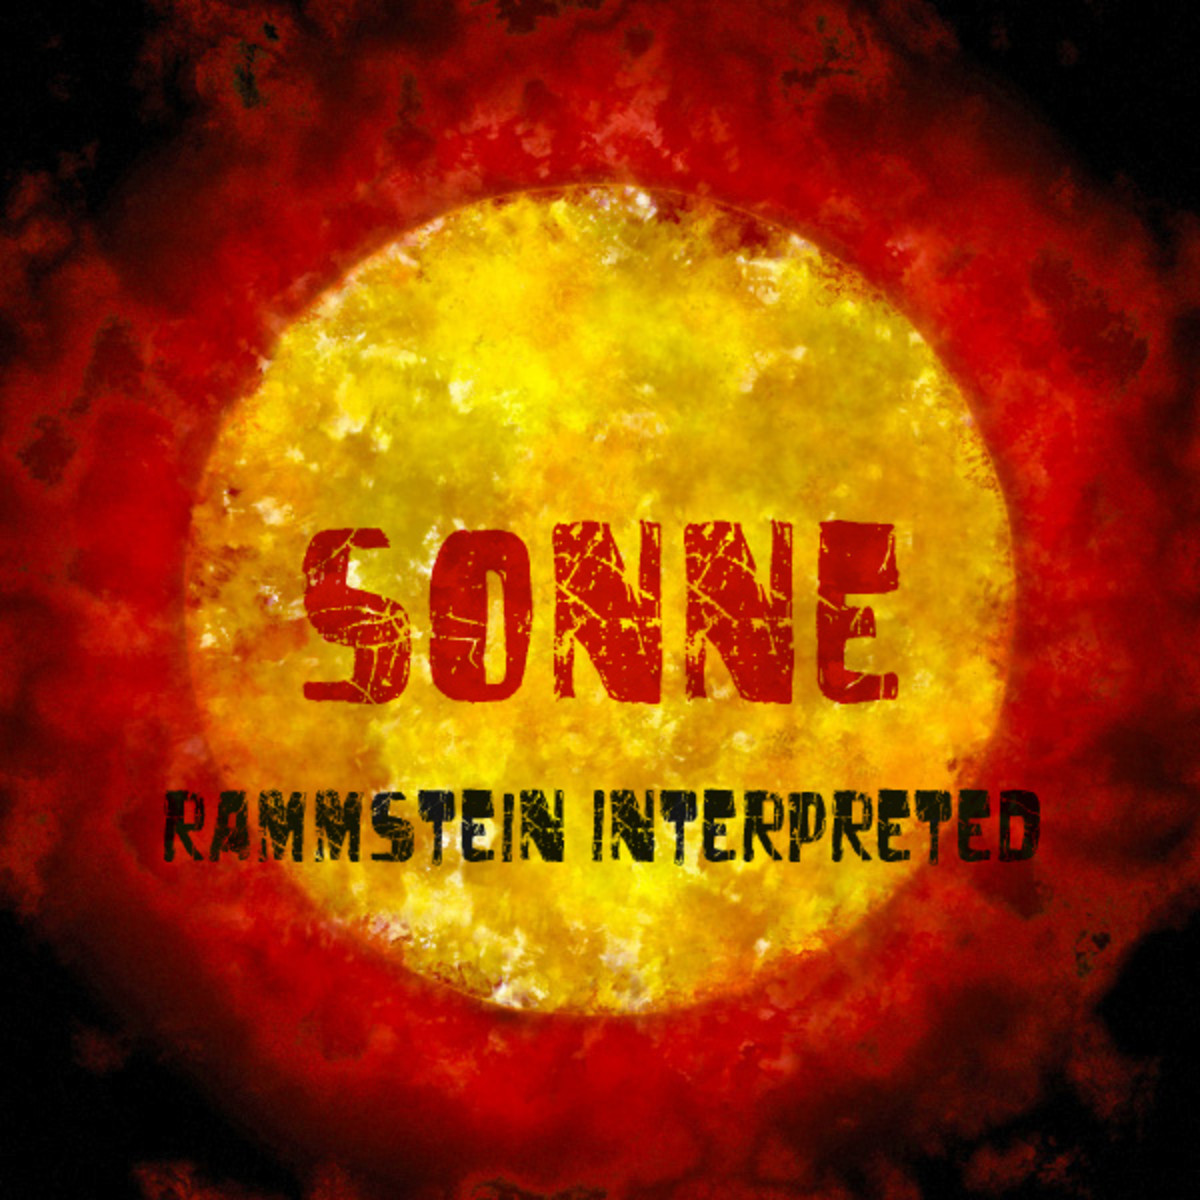 Rammstein Interpreted: Sonne